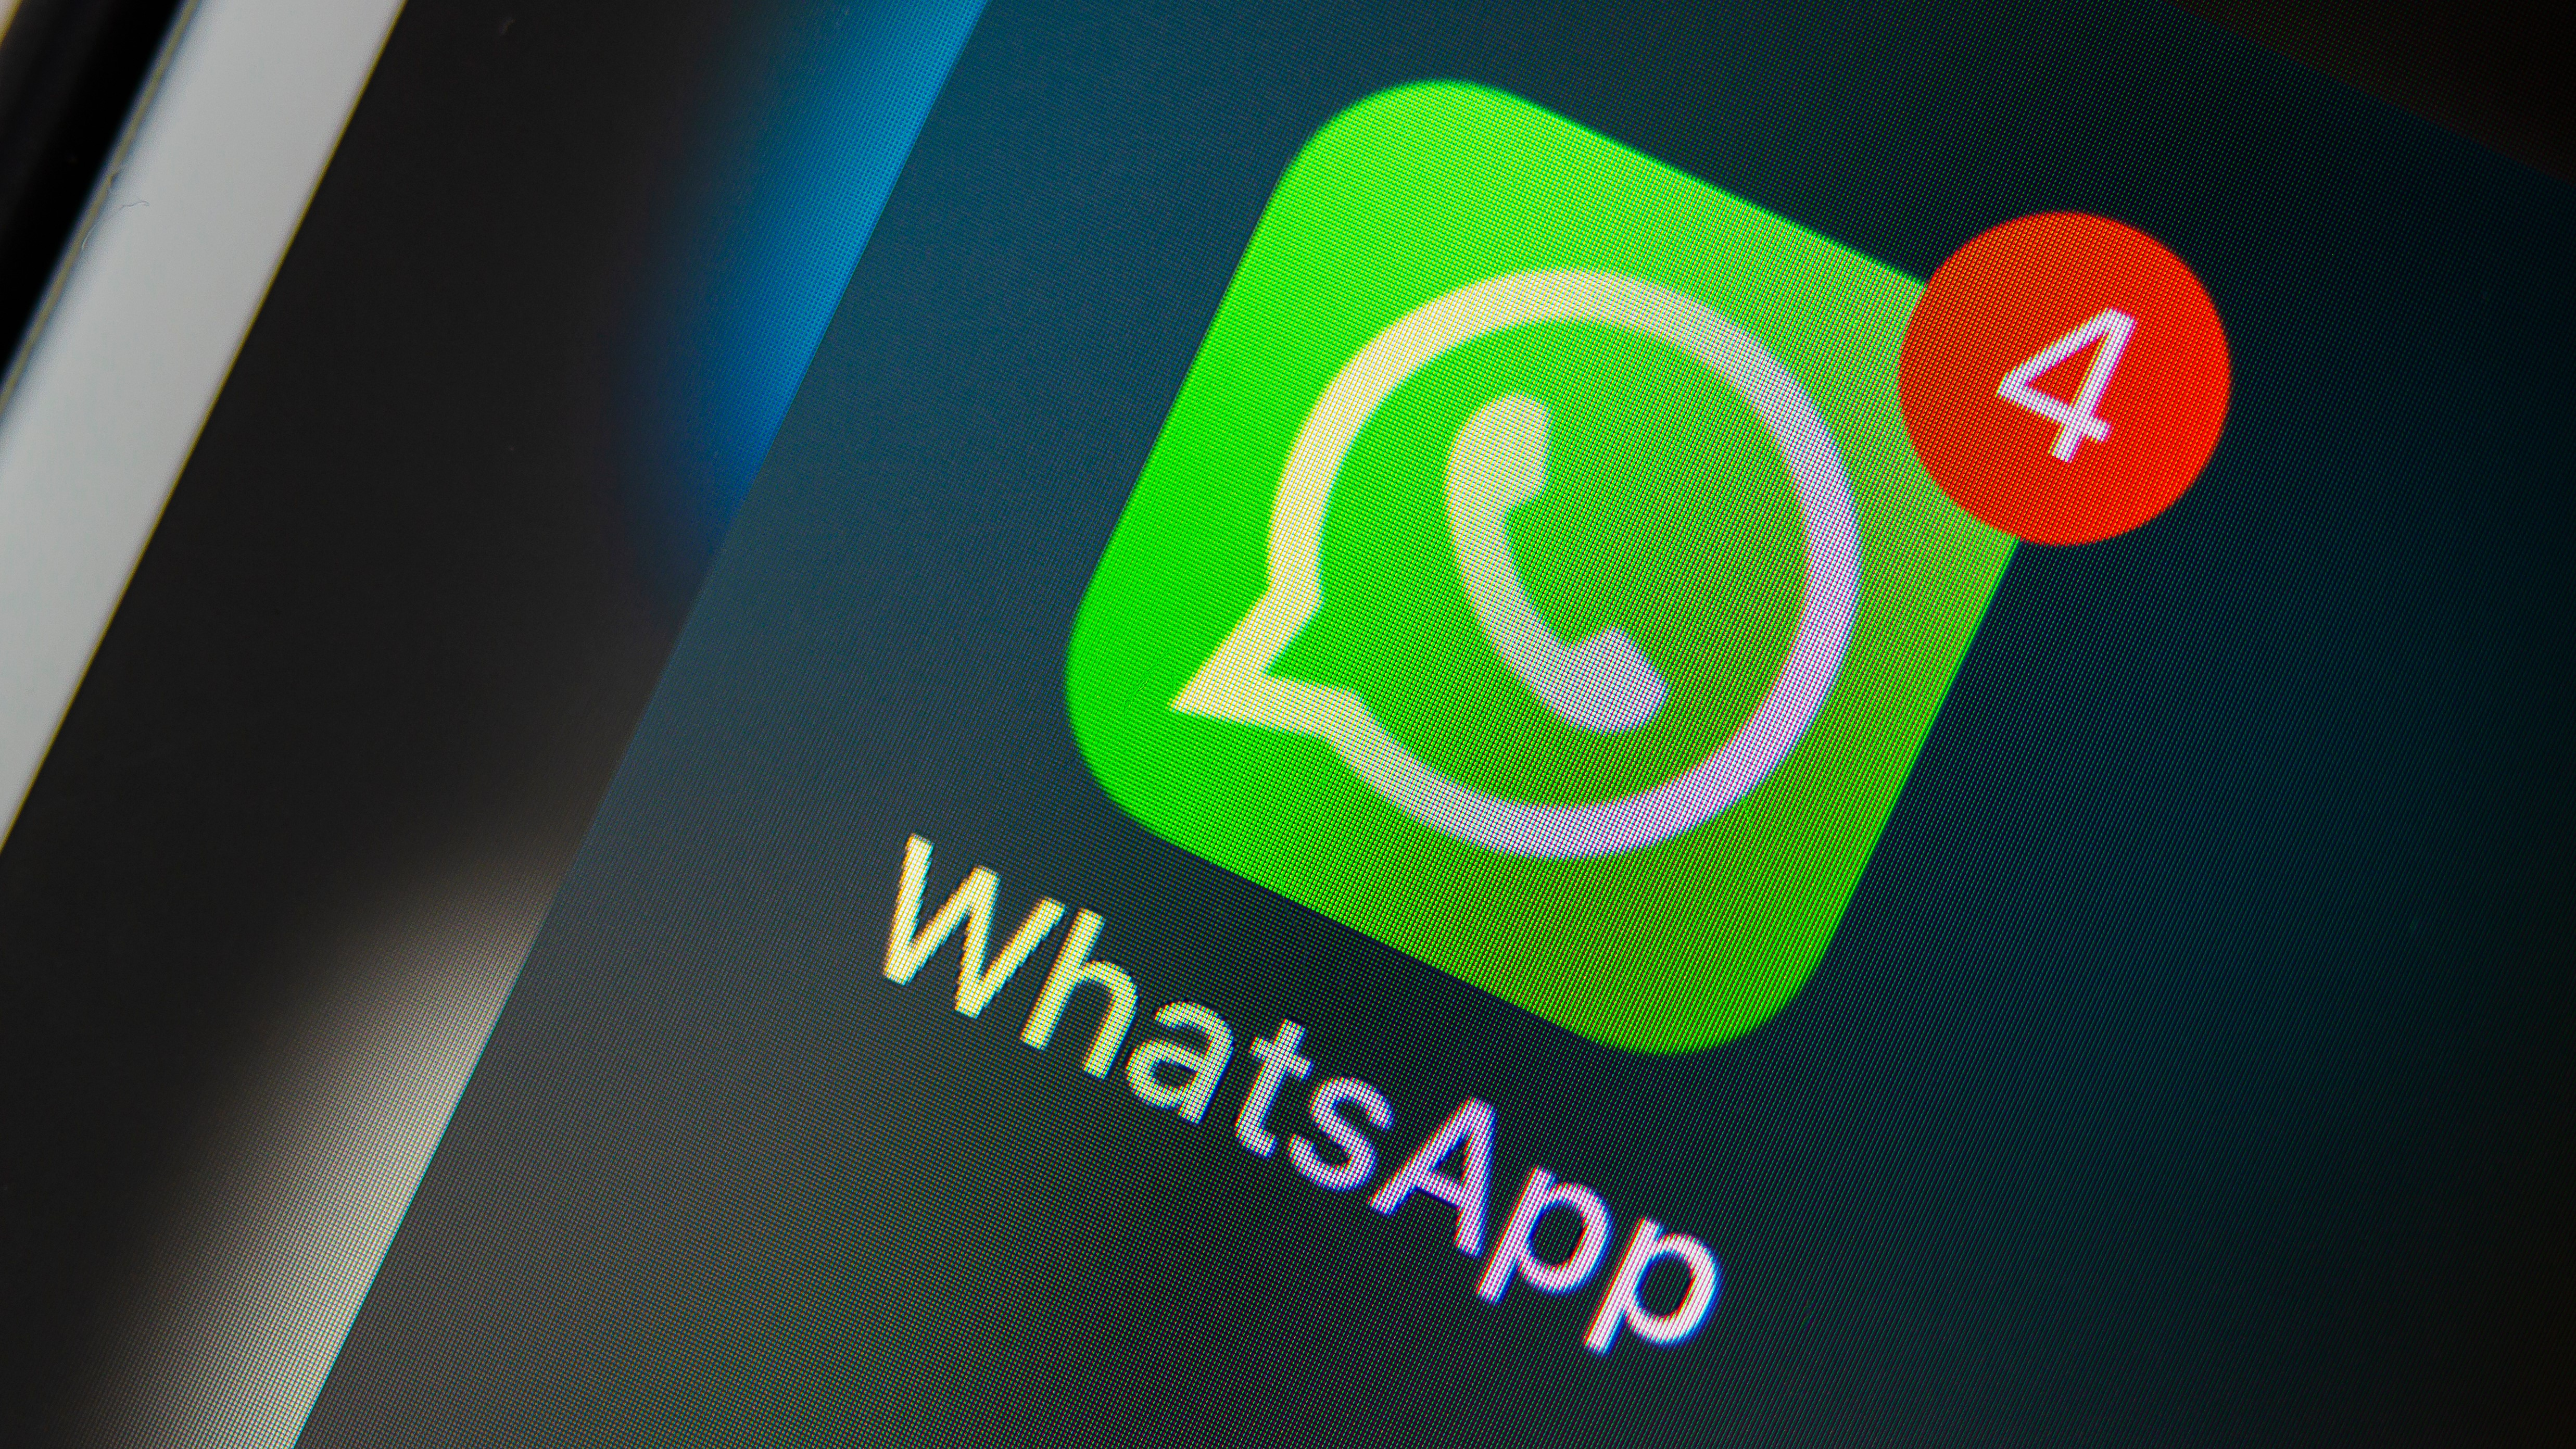 WhatsApp's flaw allows stalkers to track you easily